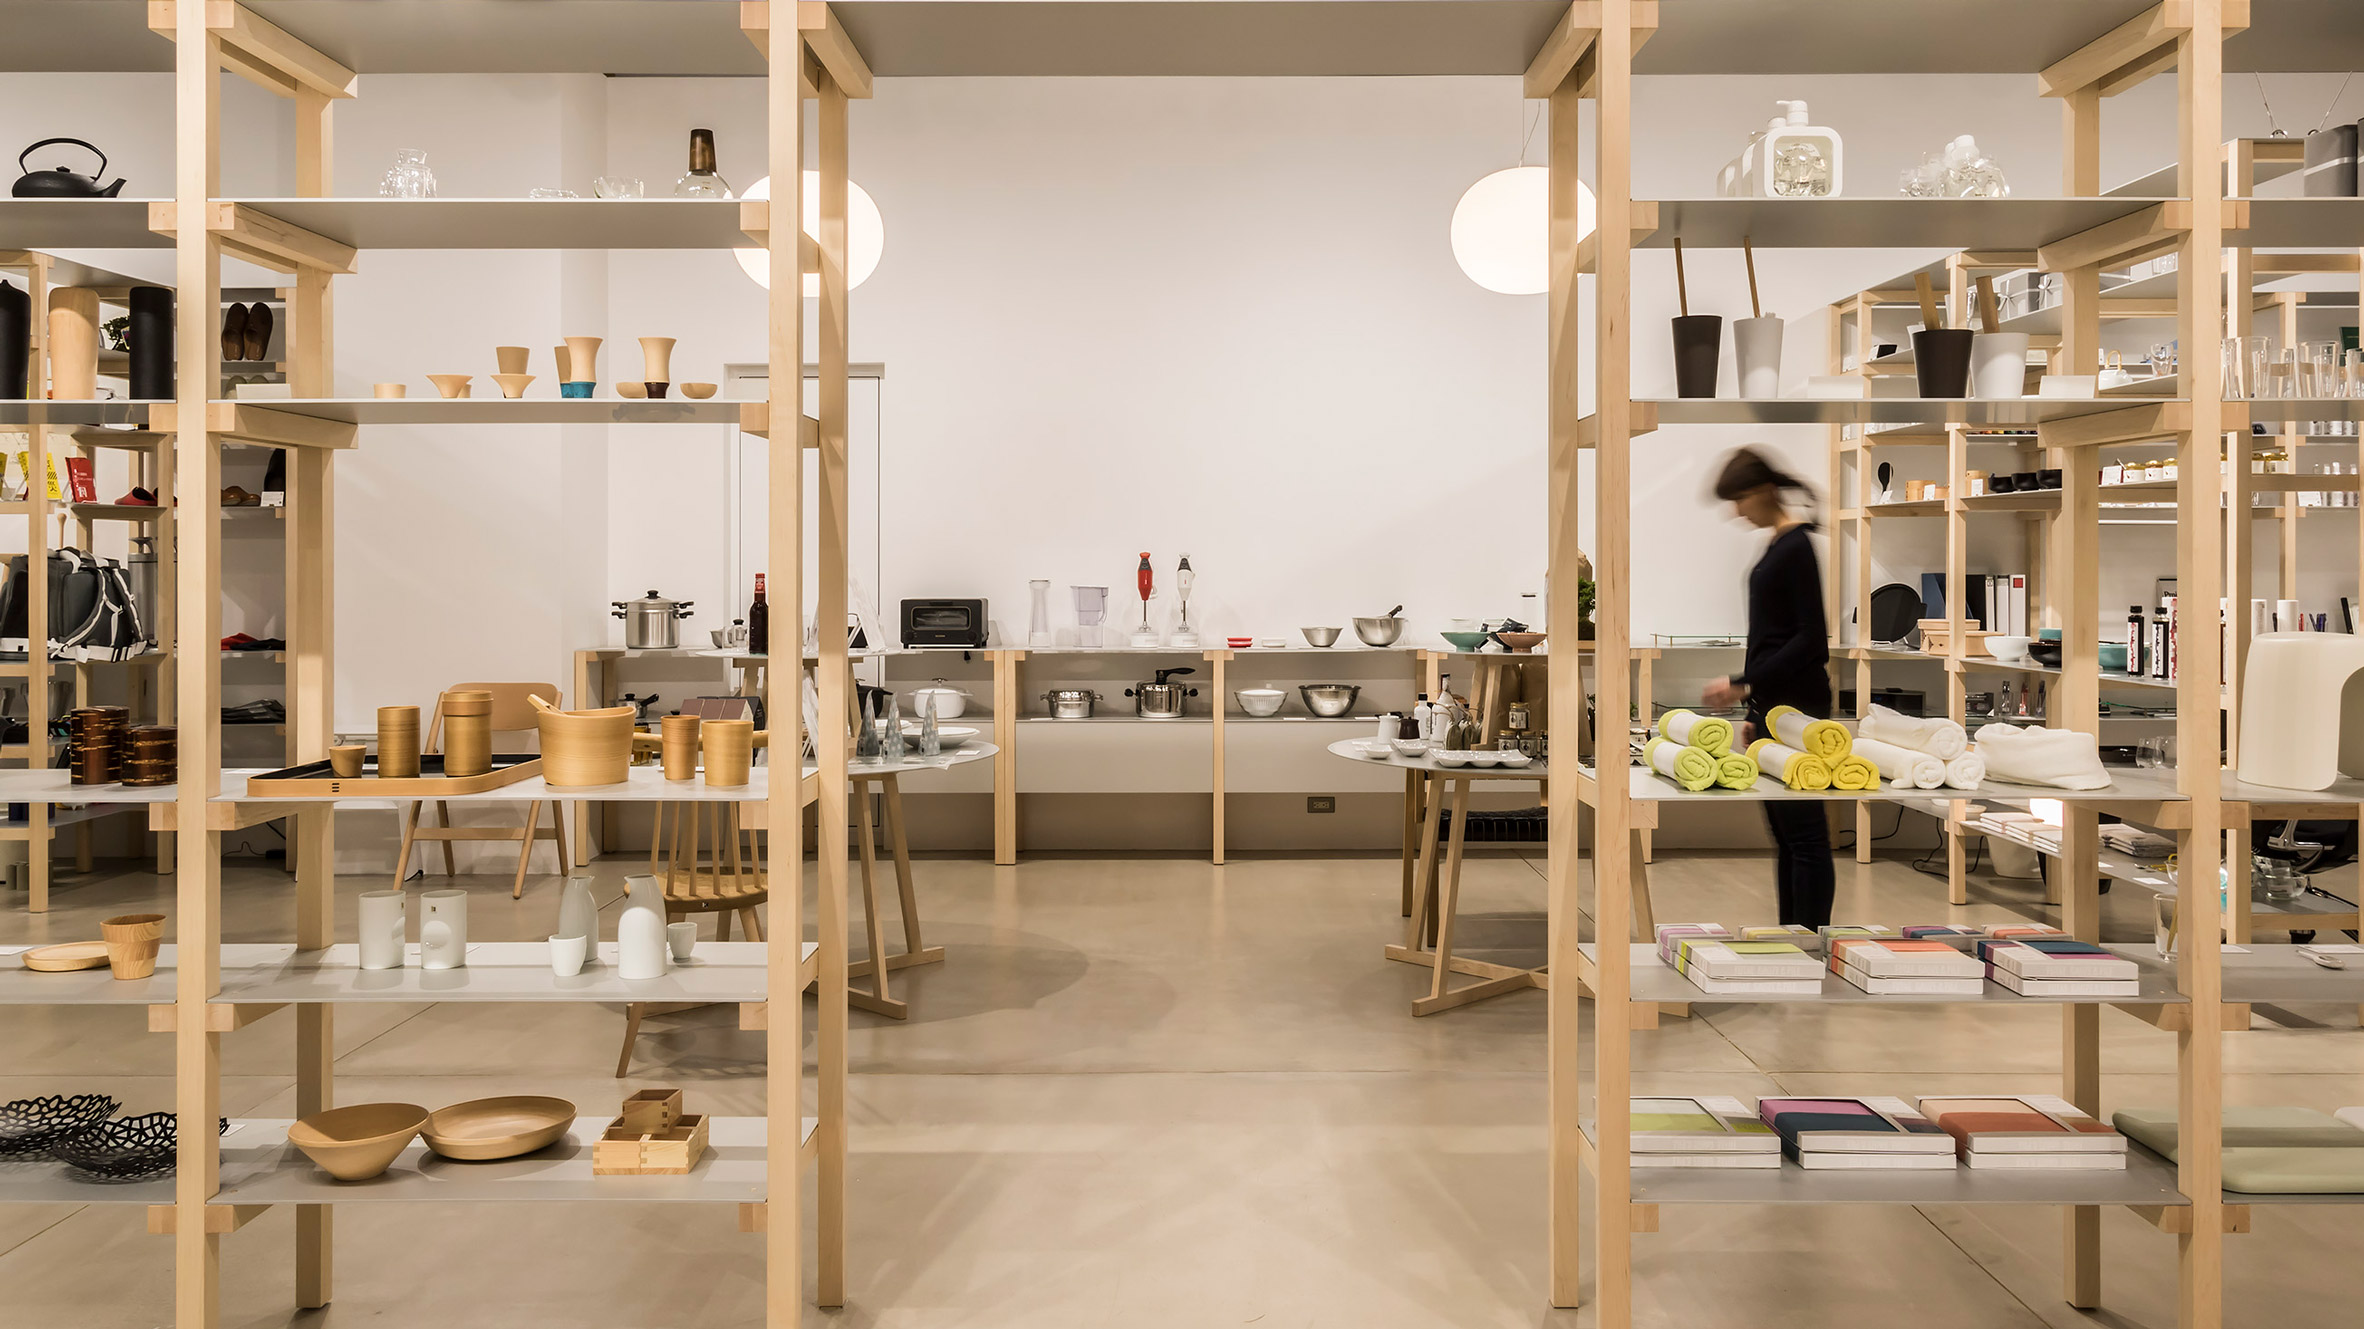 Shop architecture and interior design | Dezeen